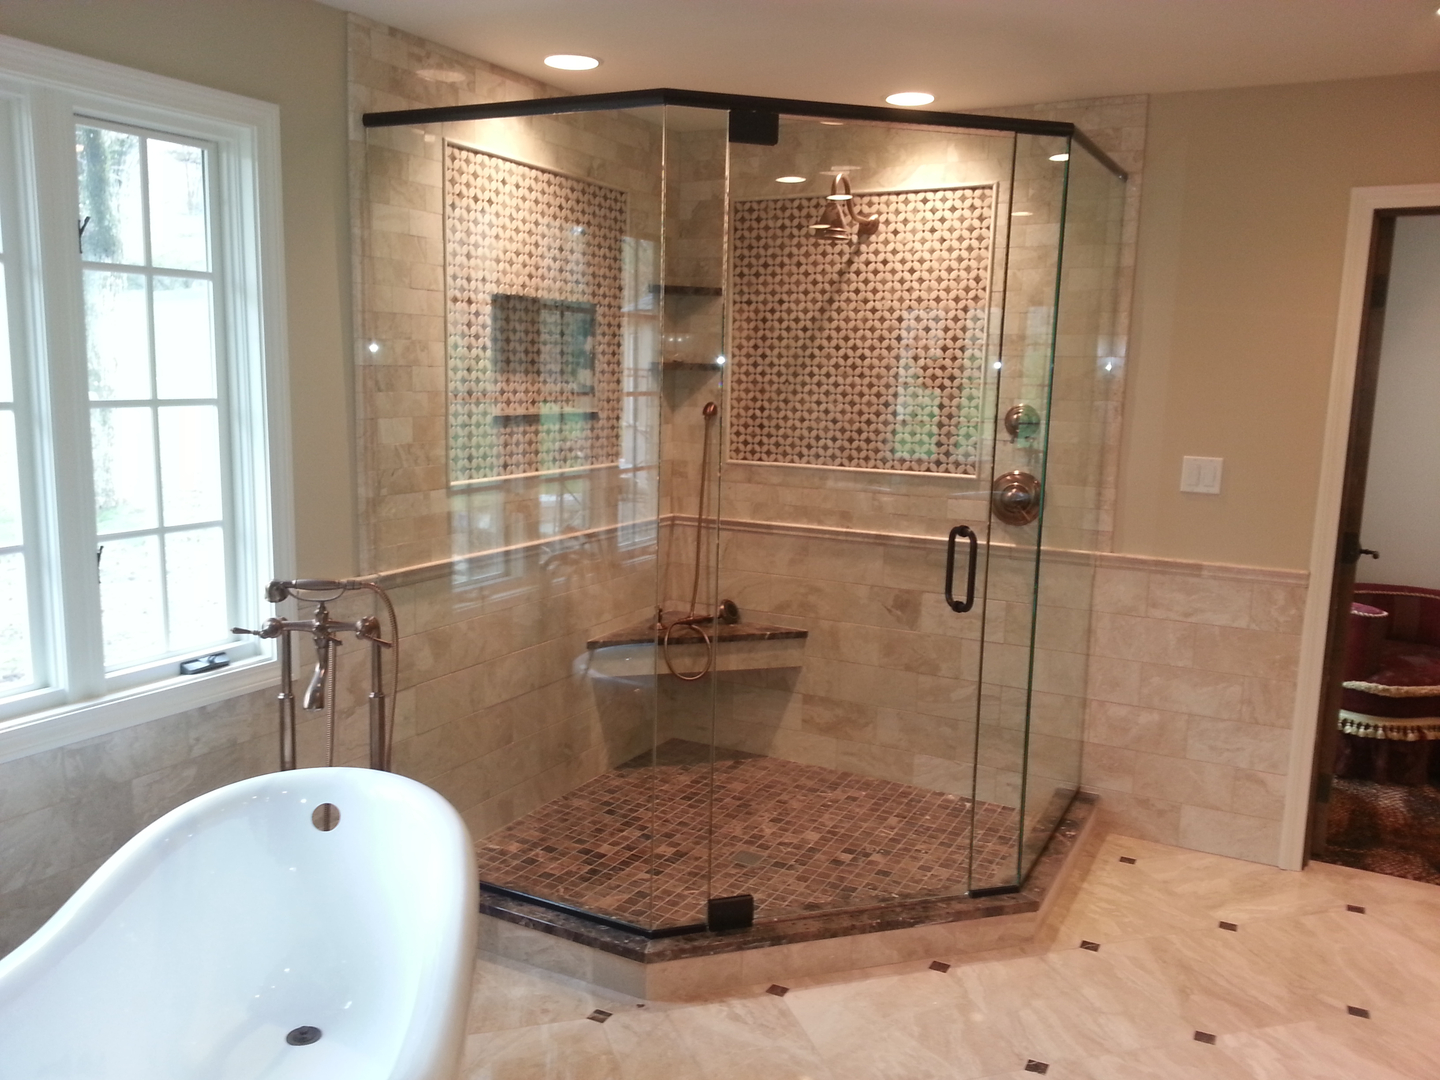 Bathroom Remodel Pictures Small Bathroom Remodel Ideas Upscale - Bathroom remodeling pittsburgh